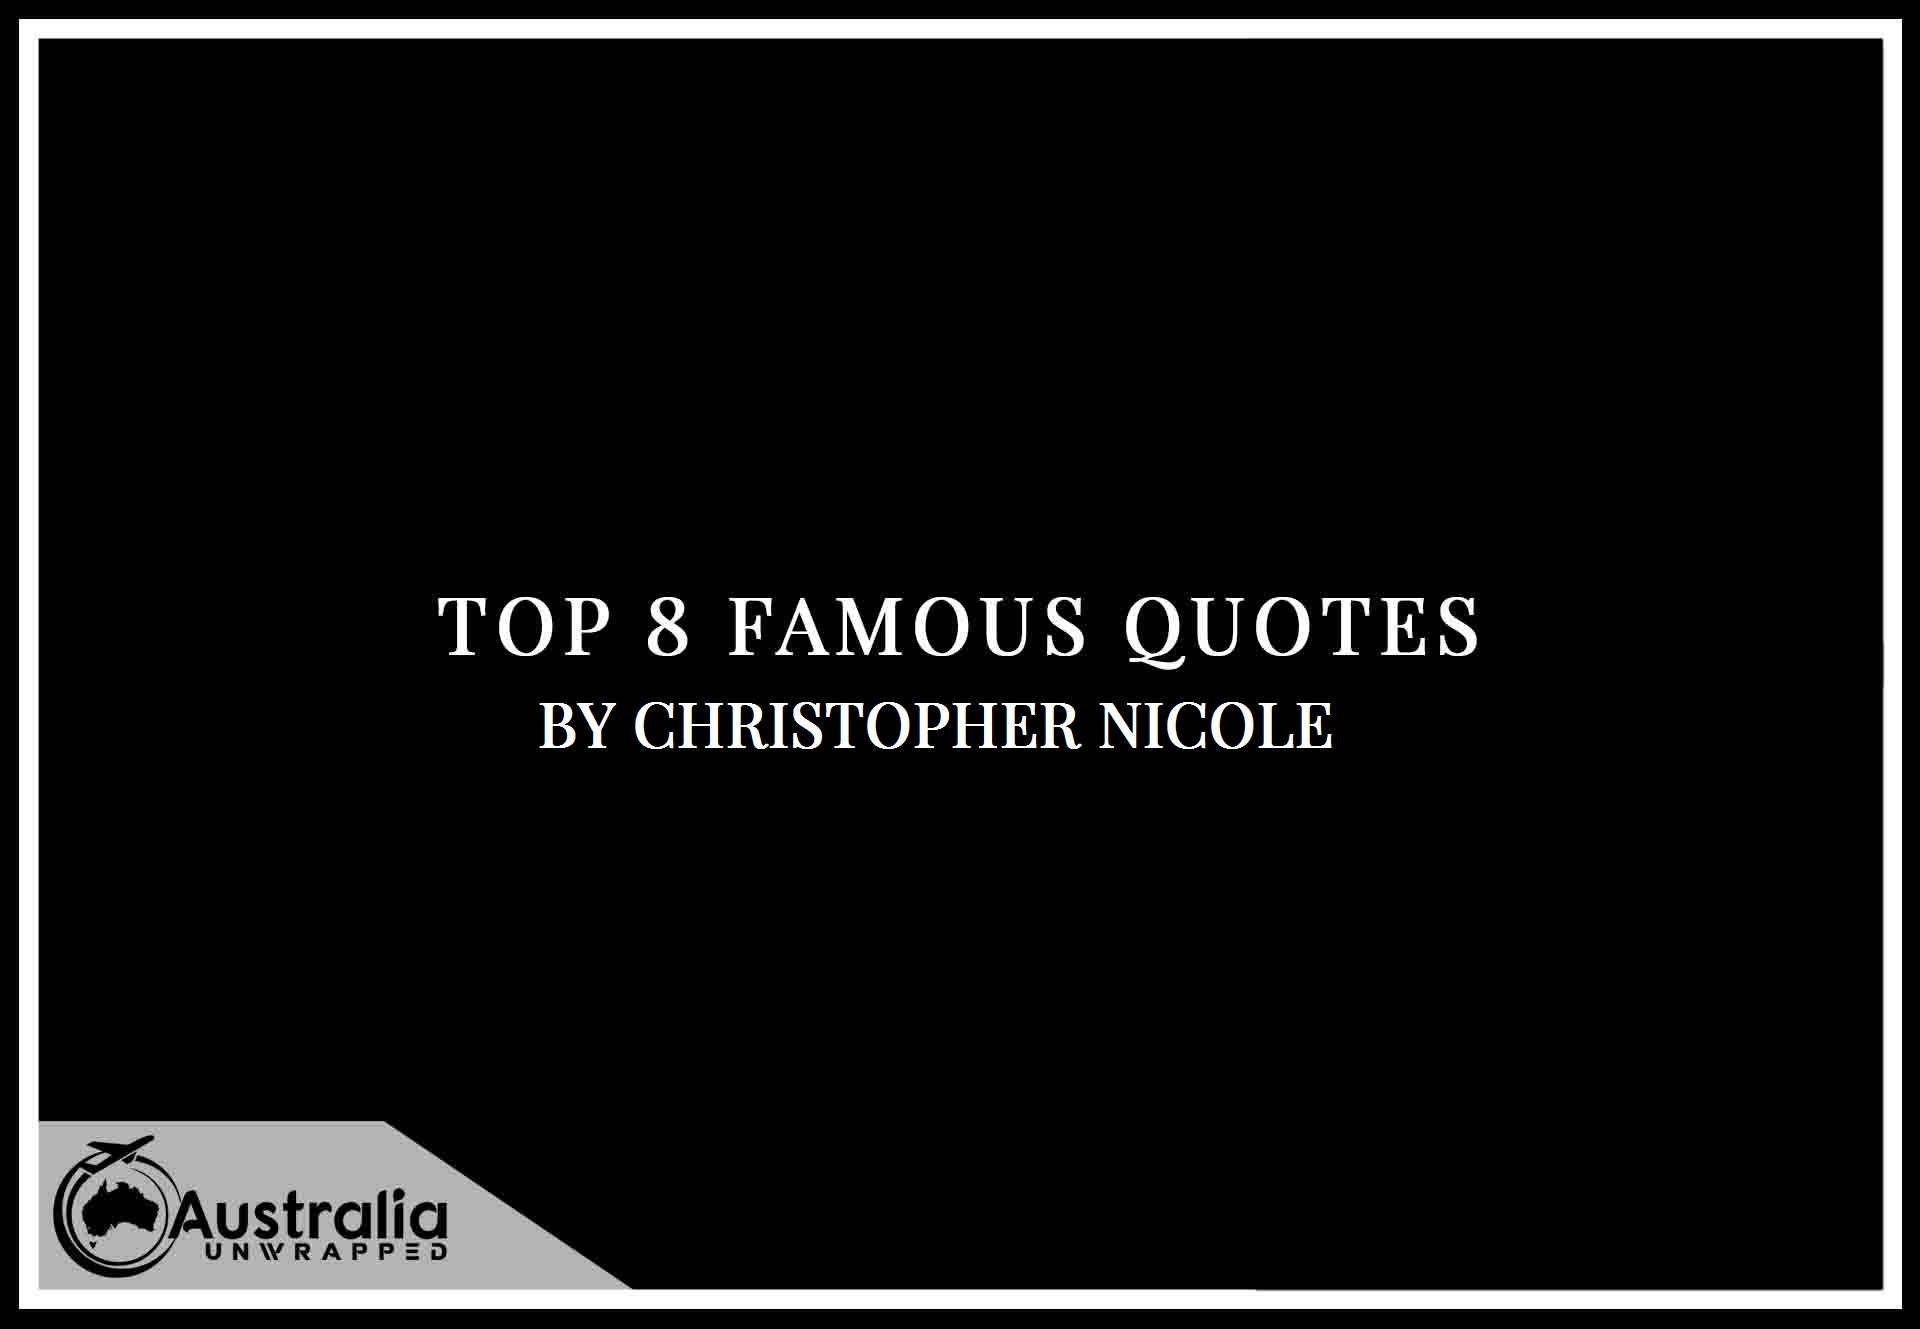 Christopher Nicole's Top 8 Popular and Famous Quotes